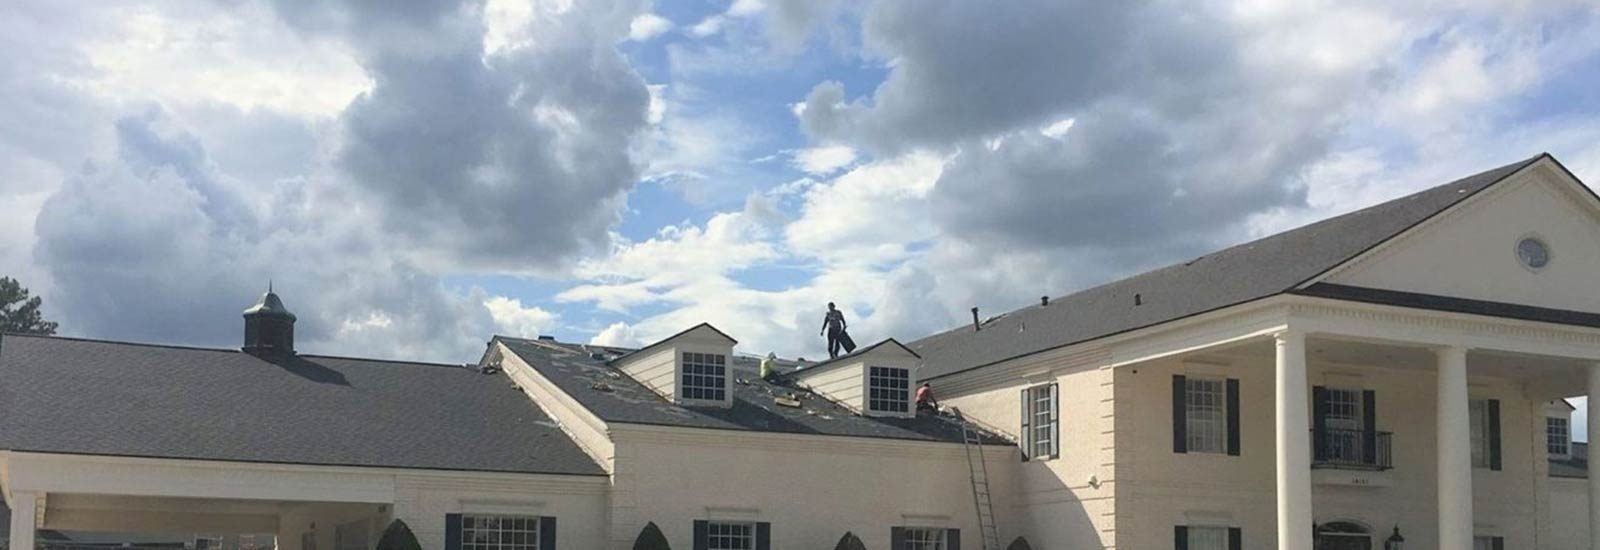 Commercial Roofing Repair In Jersey Village Tx